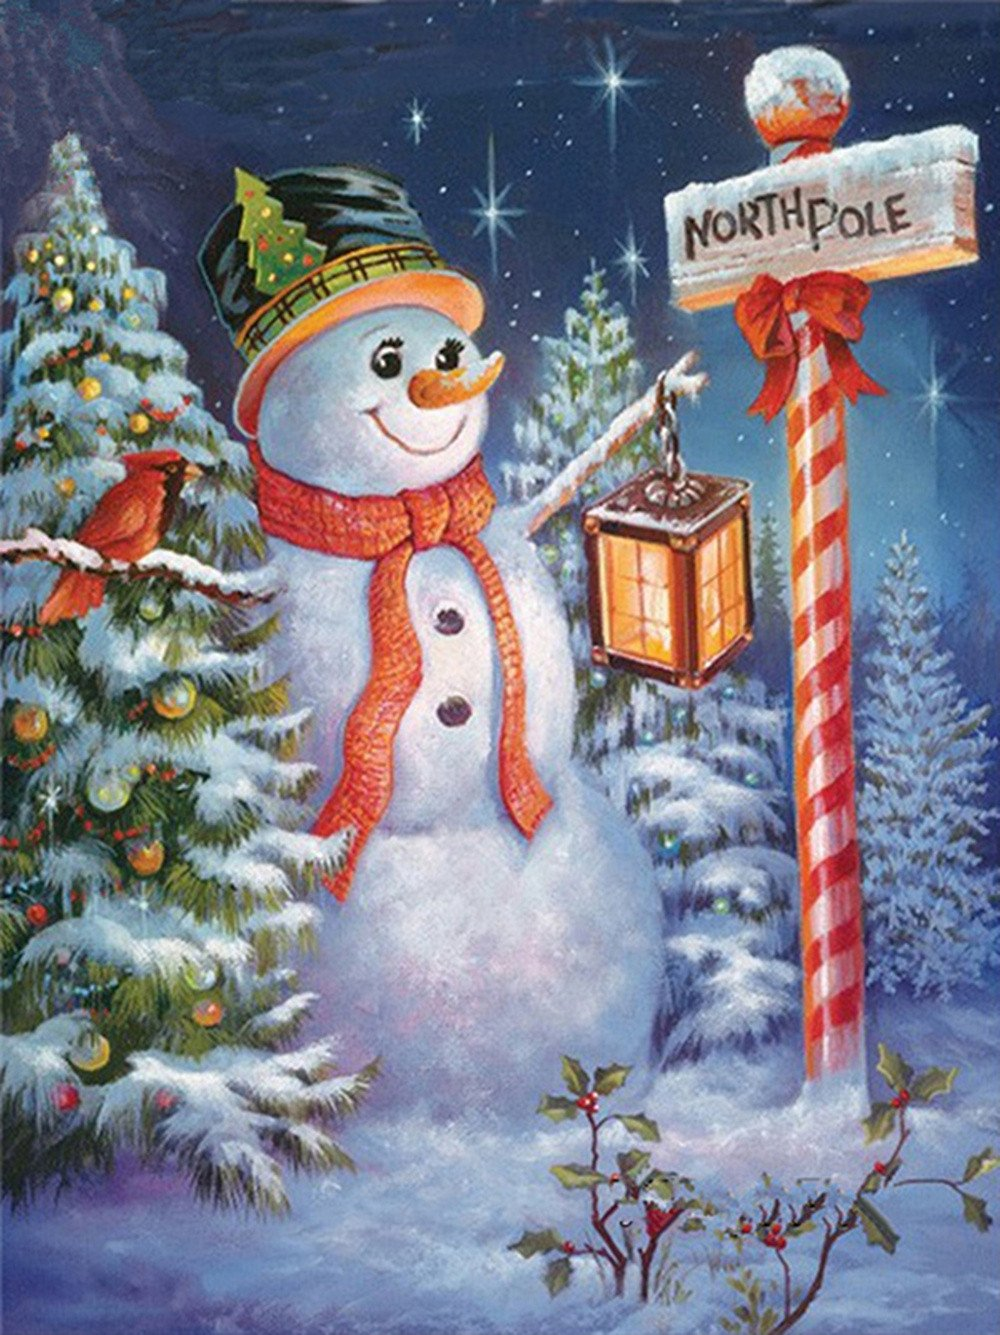 Christmas Snowman Diamond Painting Kits Full Drill,uBabamama DIY 5D Diamond Painting Kits Rhinestone Crystal Embroidery Pictures Cross Stitch Art Craft Decor for Home